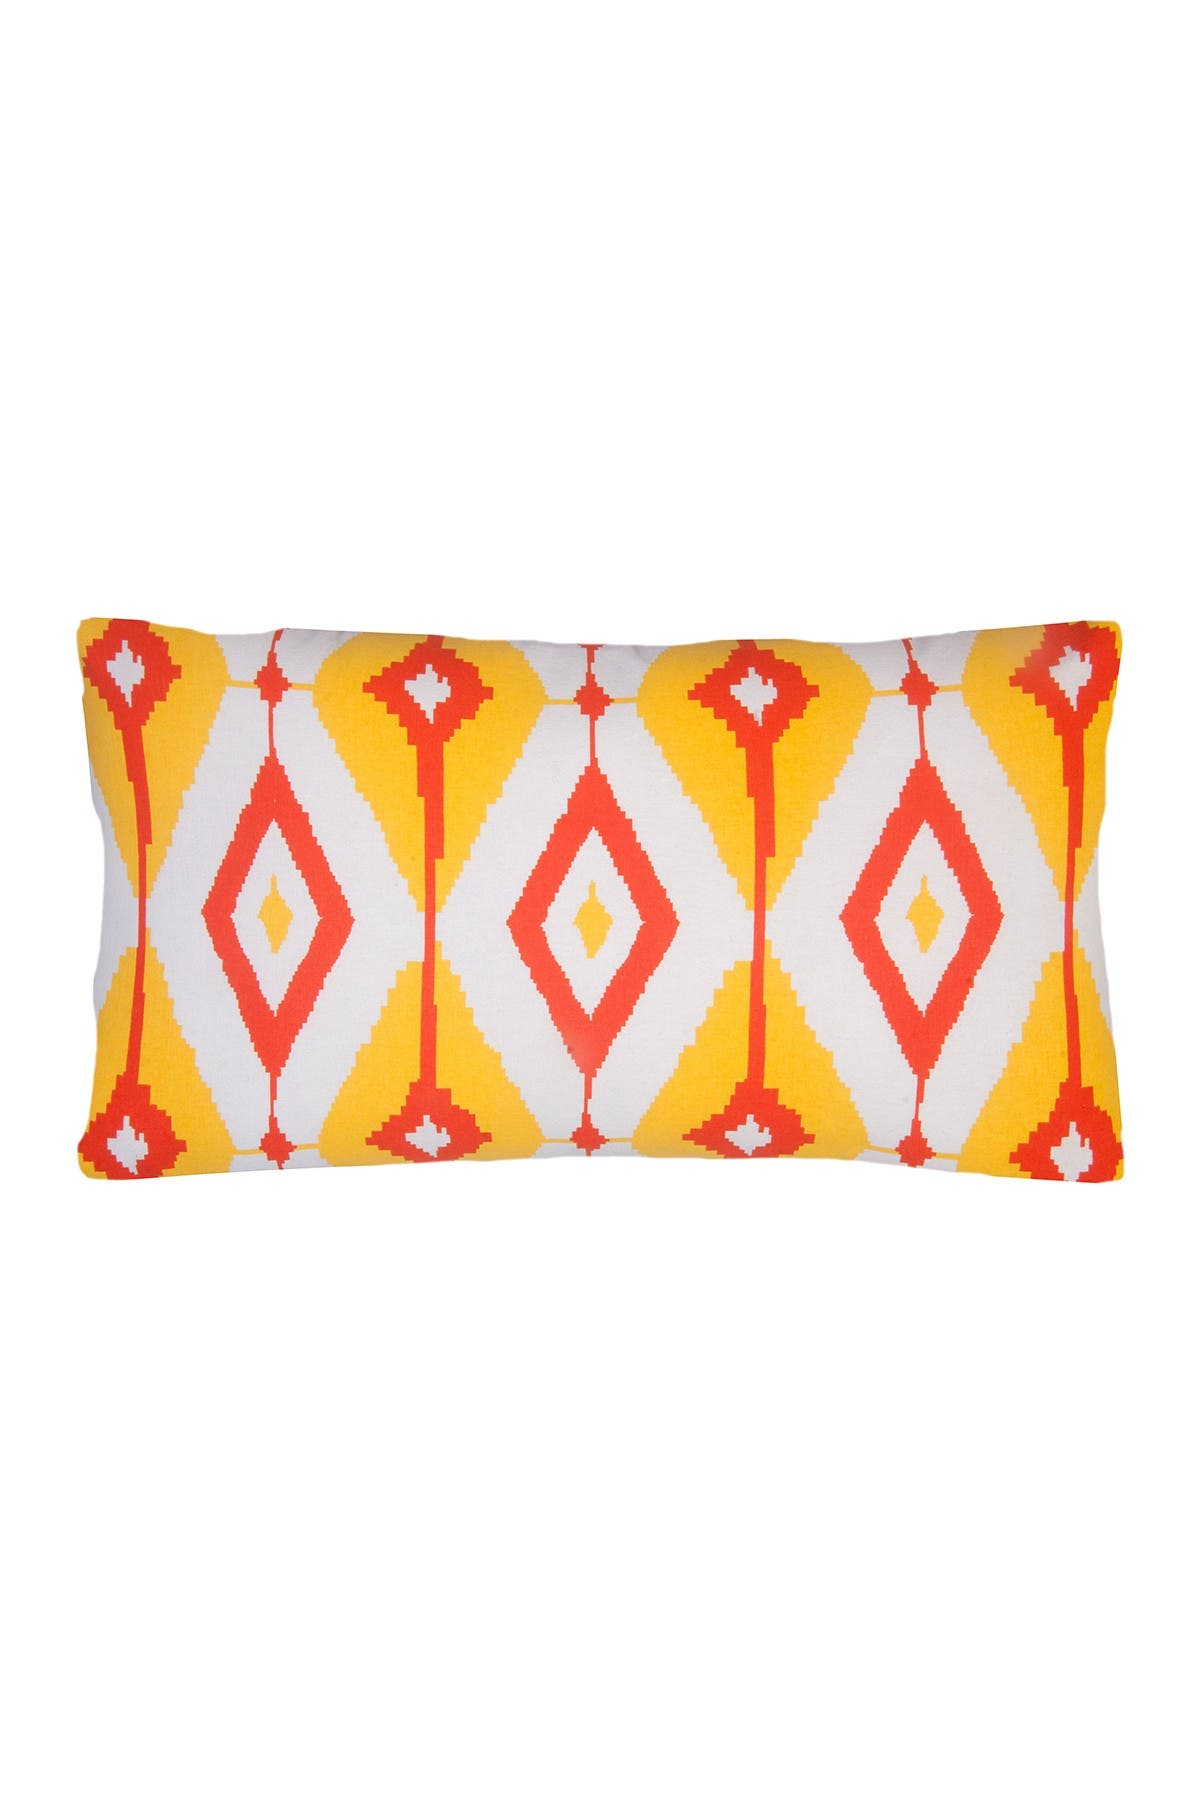 Divine Home Yellow Orange Helios Lumbar Throw Pillow 24 X14 Nordstrom Rack